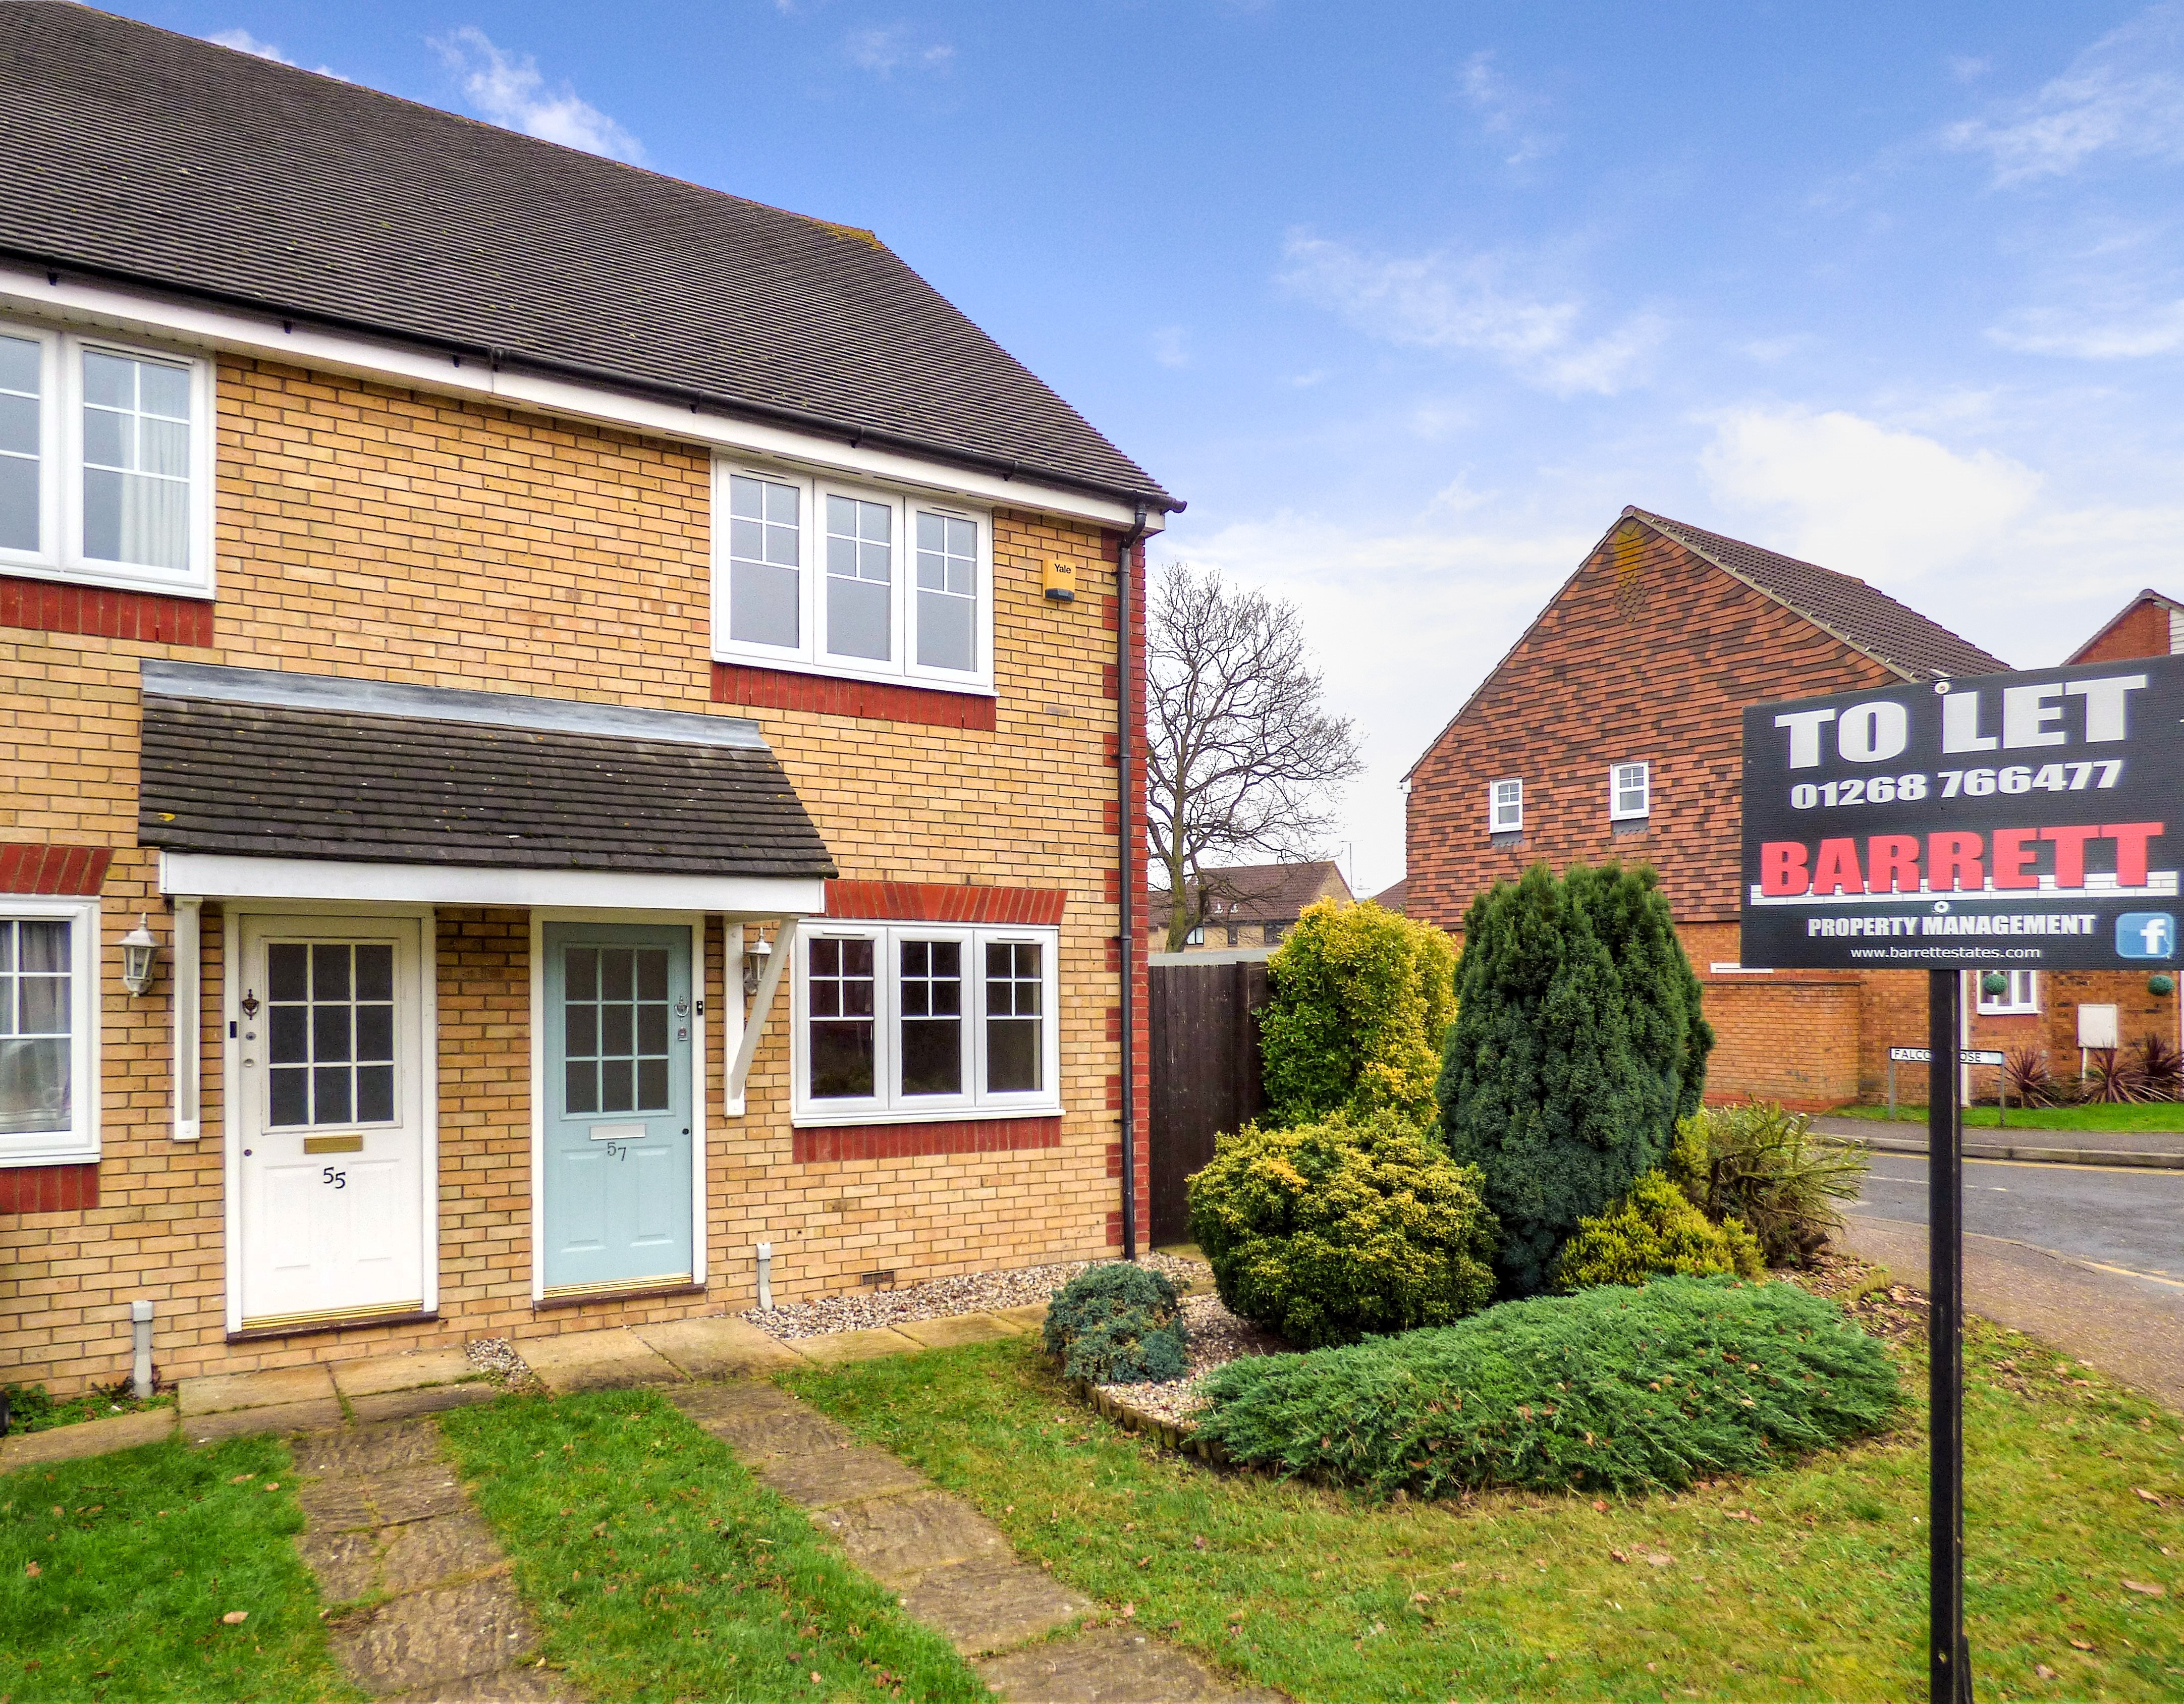 2 bed semi-detached house to rent in Hatfield Road, Rayleigh - Property Image 1